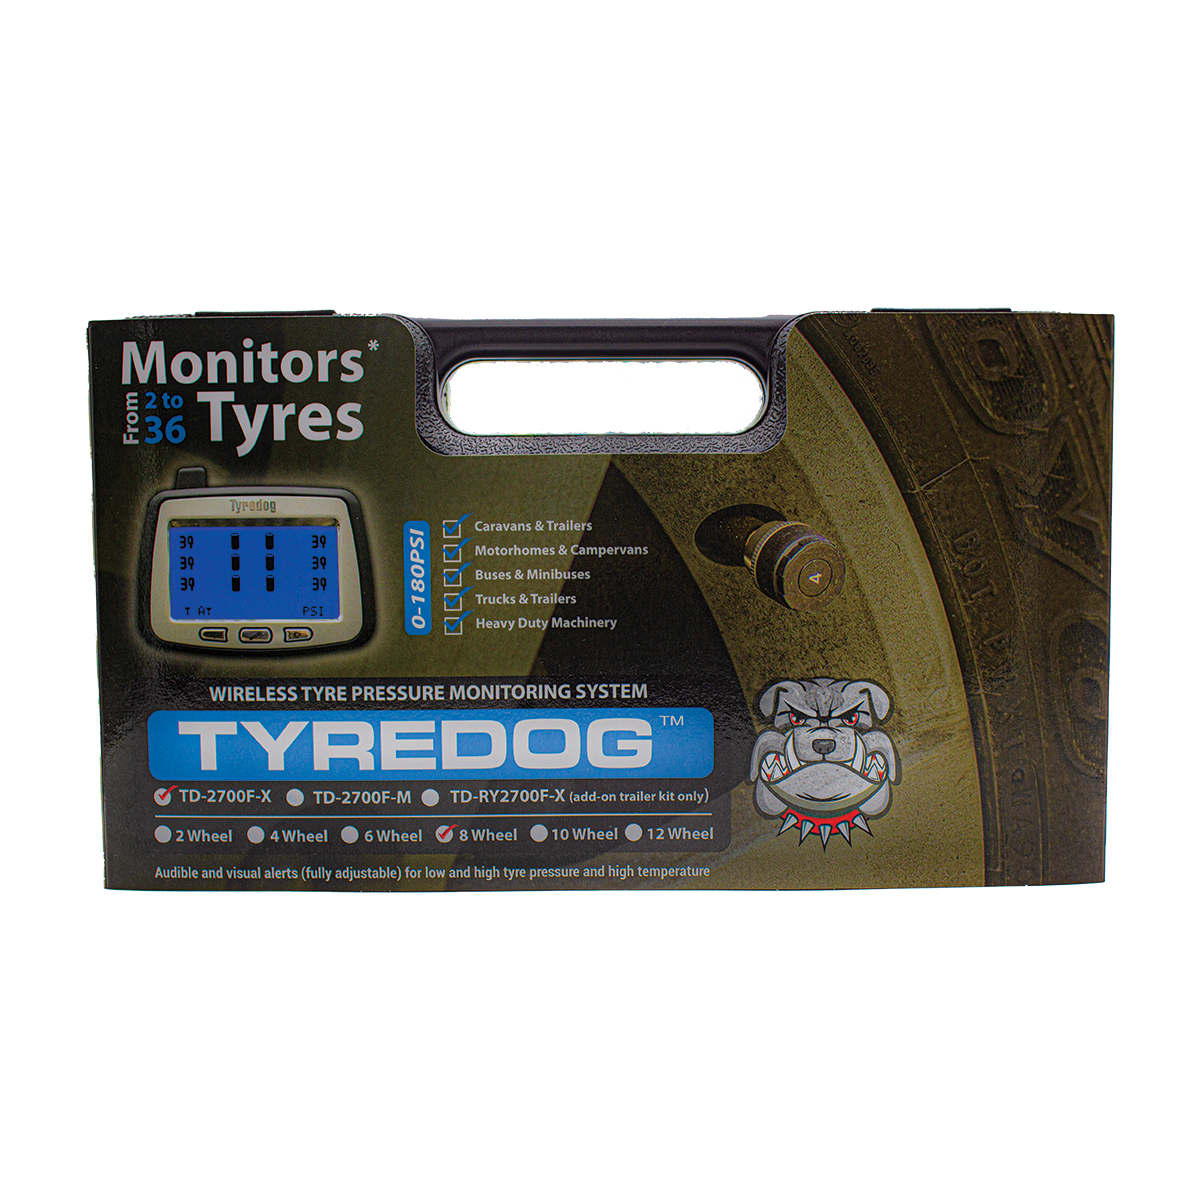 TYREDOG TD-2700F-X08 - 8 Wheel External Tyre Pressure Monitoring System